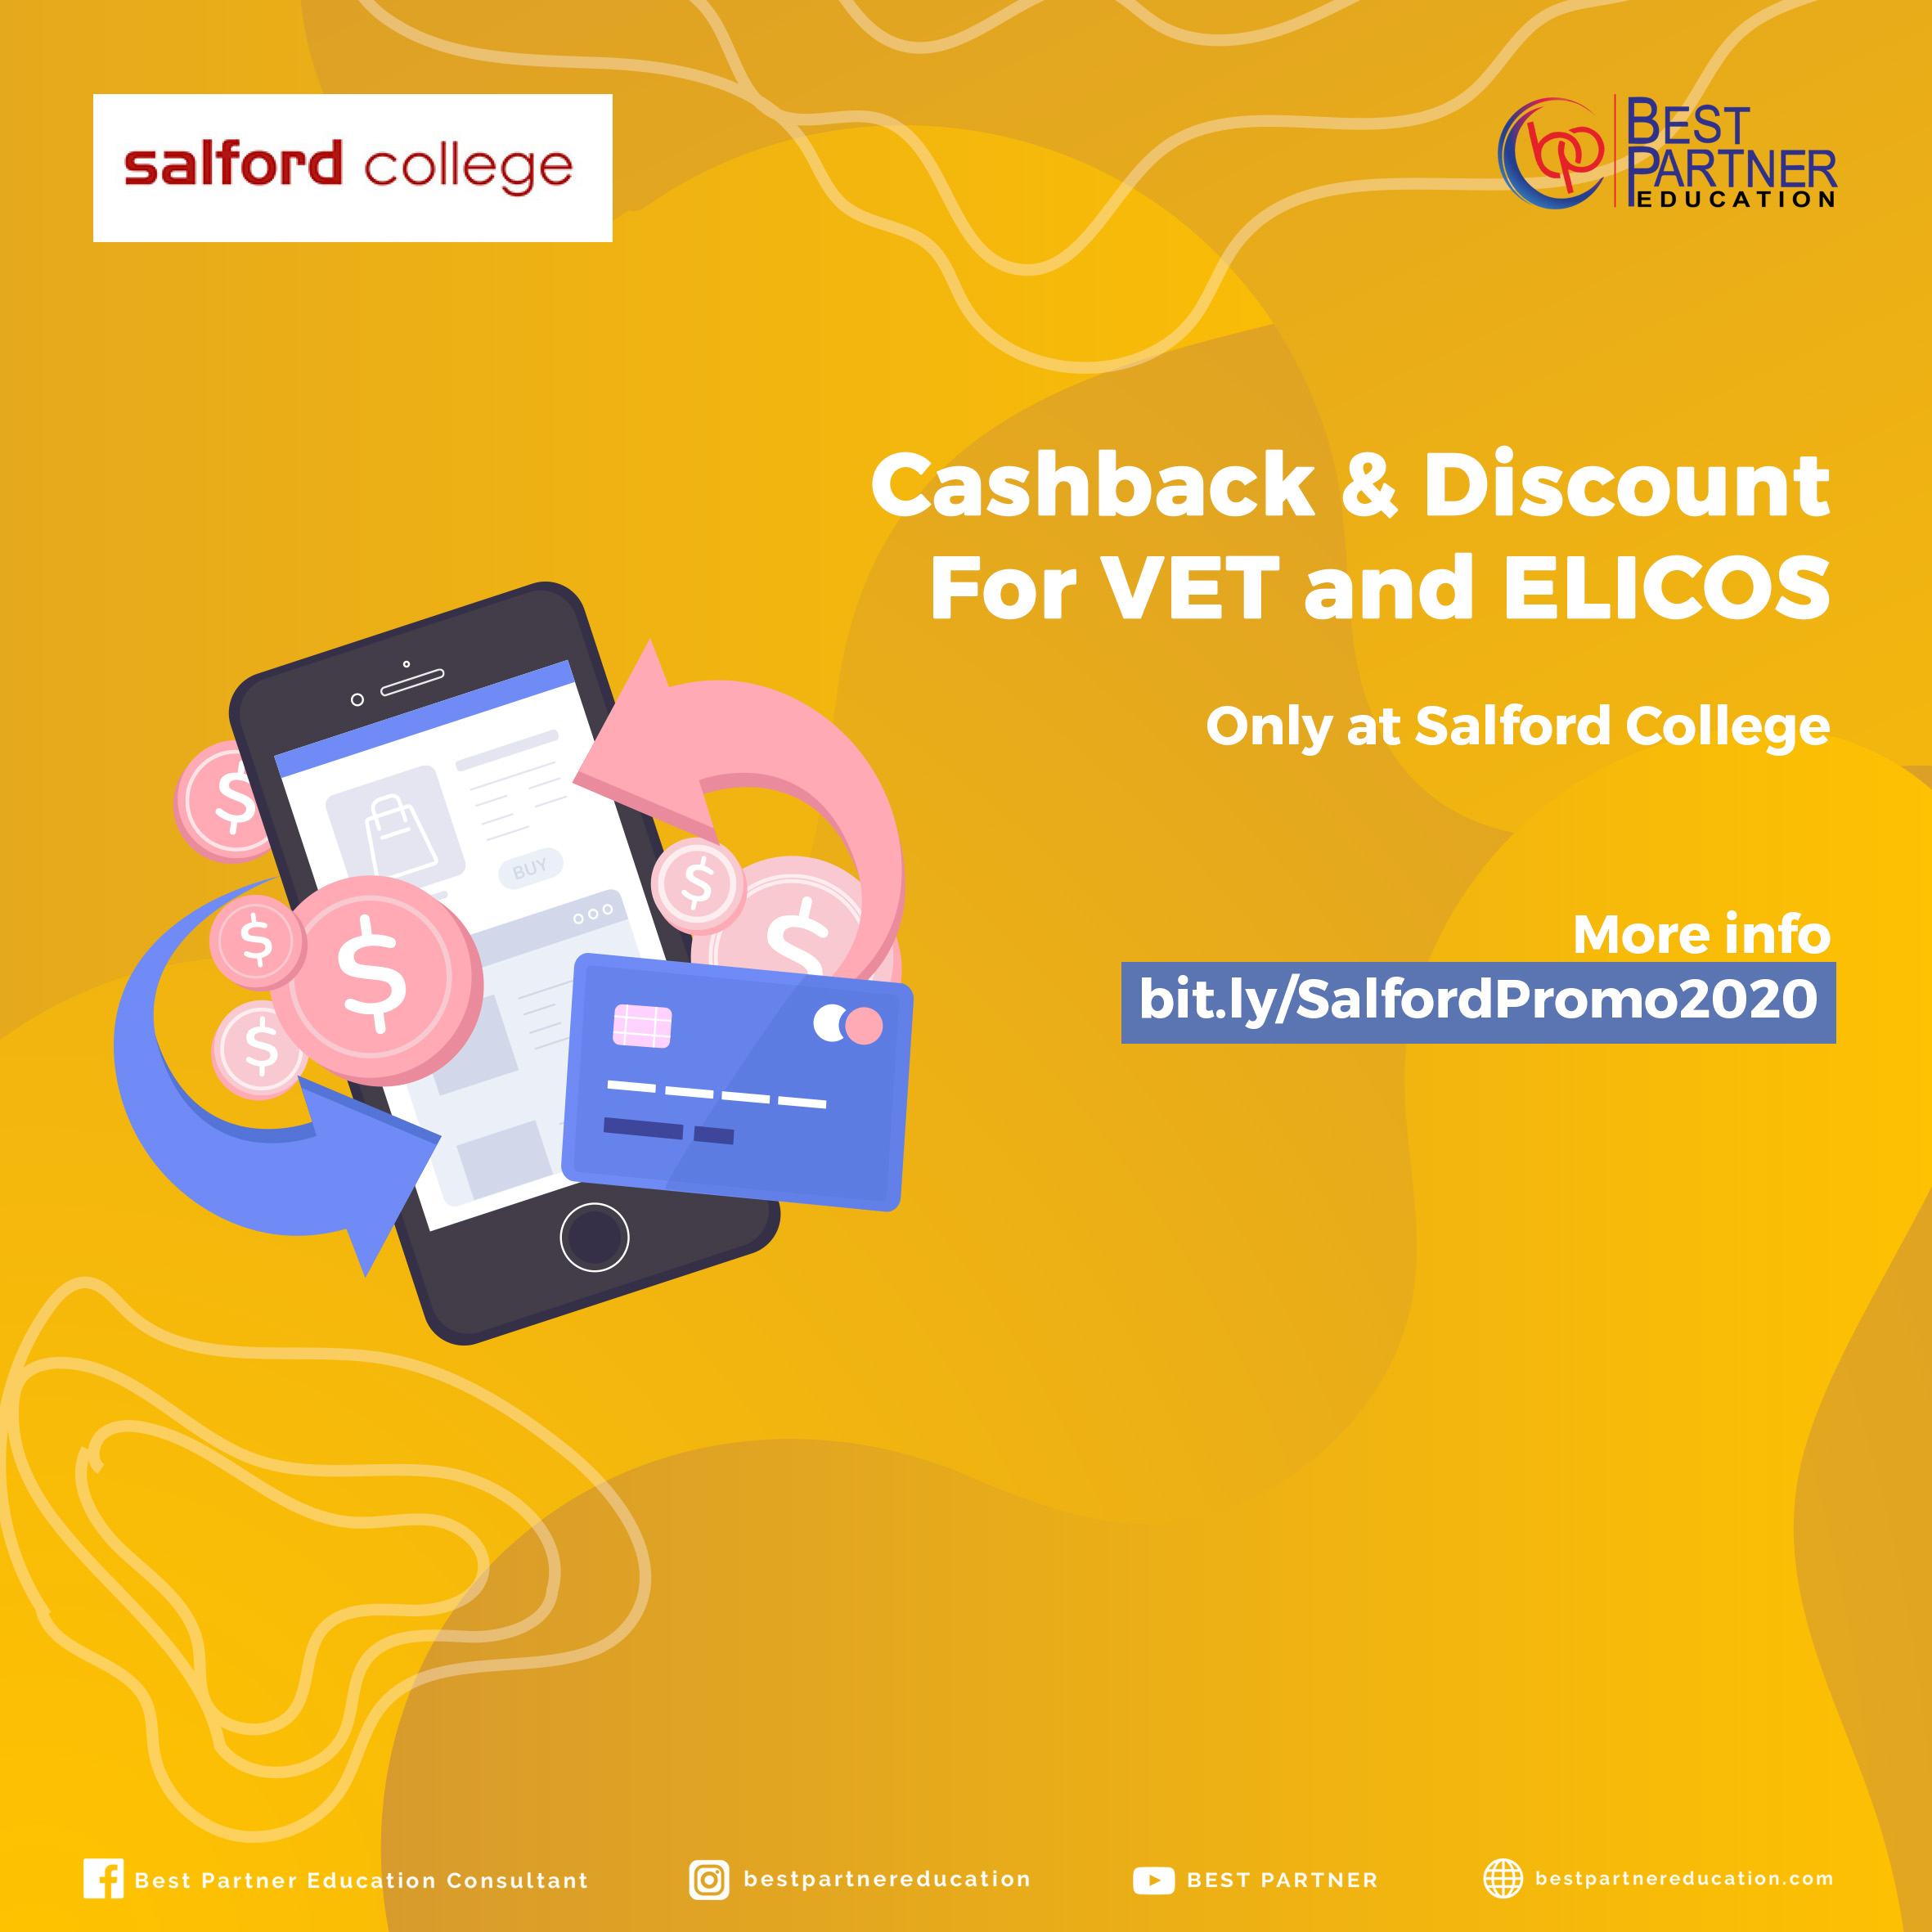 Cashback & Discount  For VET and ELICOS Only at Salford College